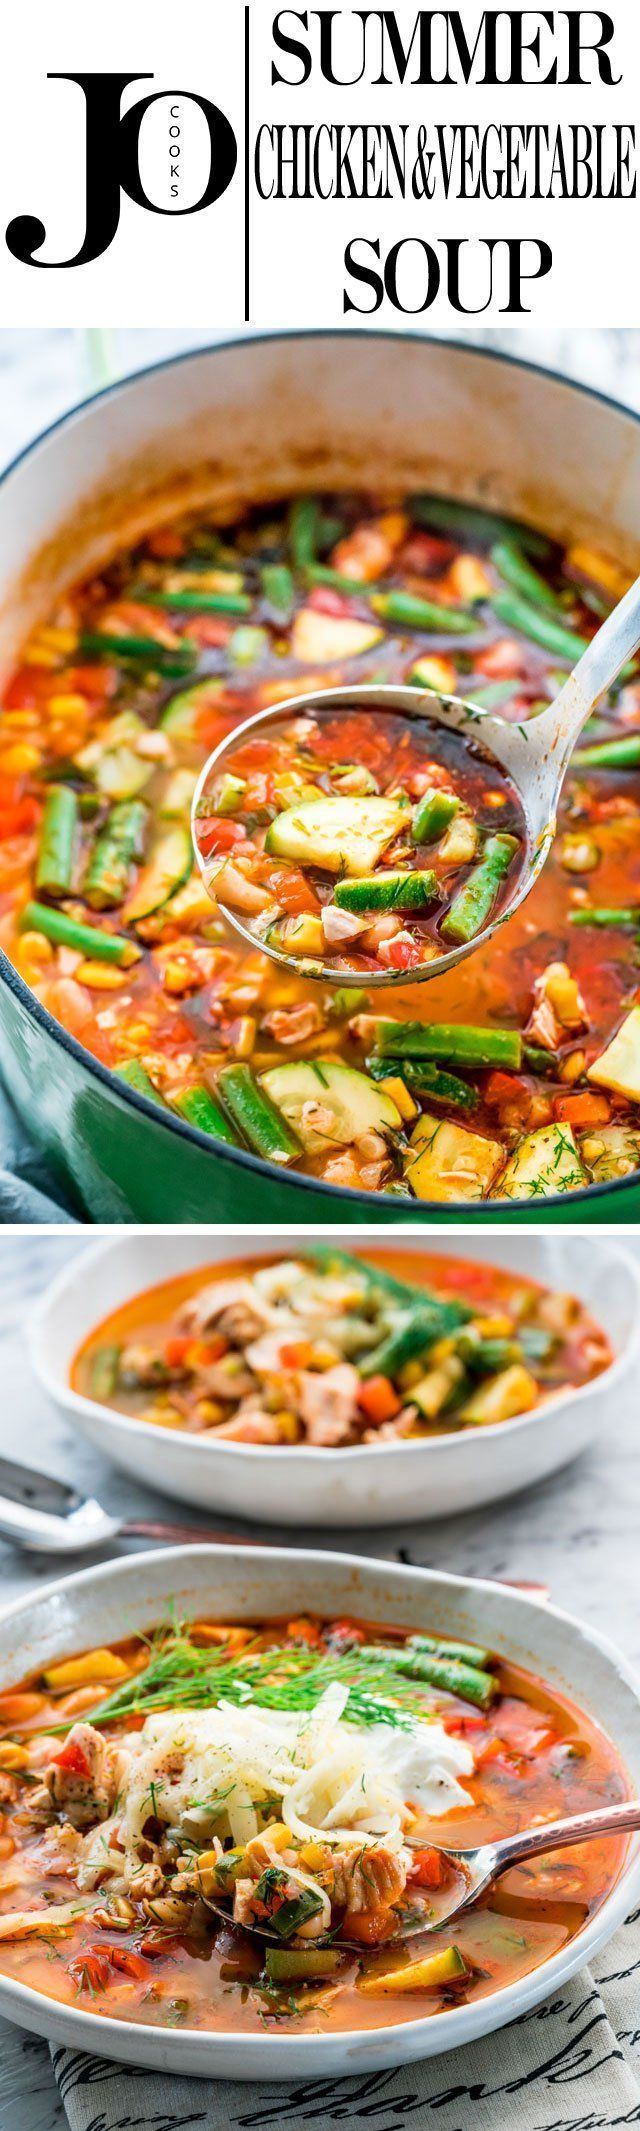 Here's my version of a delicious and comforting summer chicken and vegetable soup. Loaded with tons of veggies and chicken this soup is perfect for summer and a perfect use of all those summer vegetables.